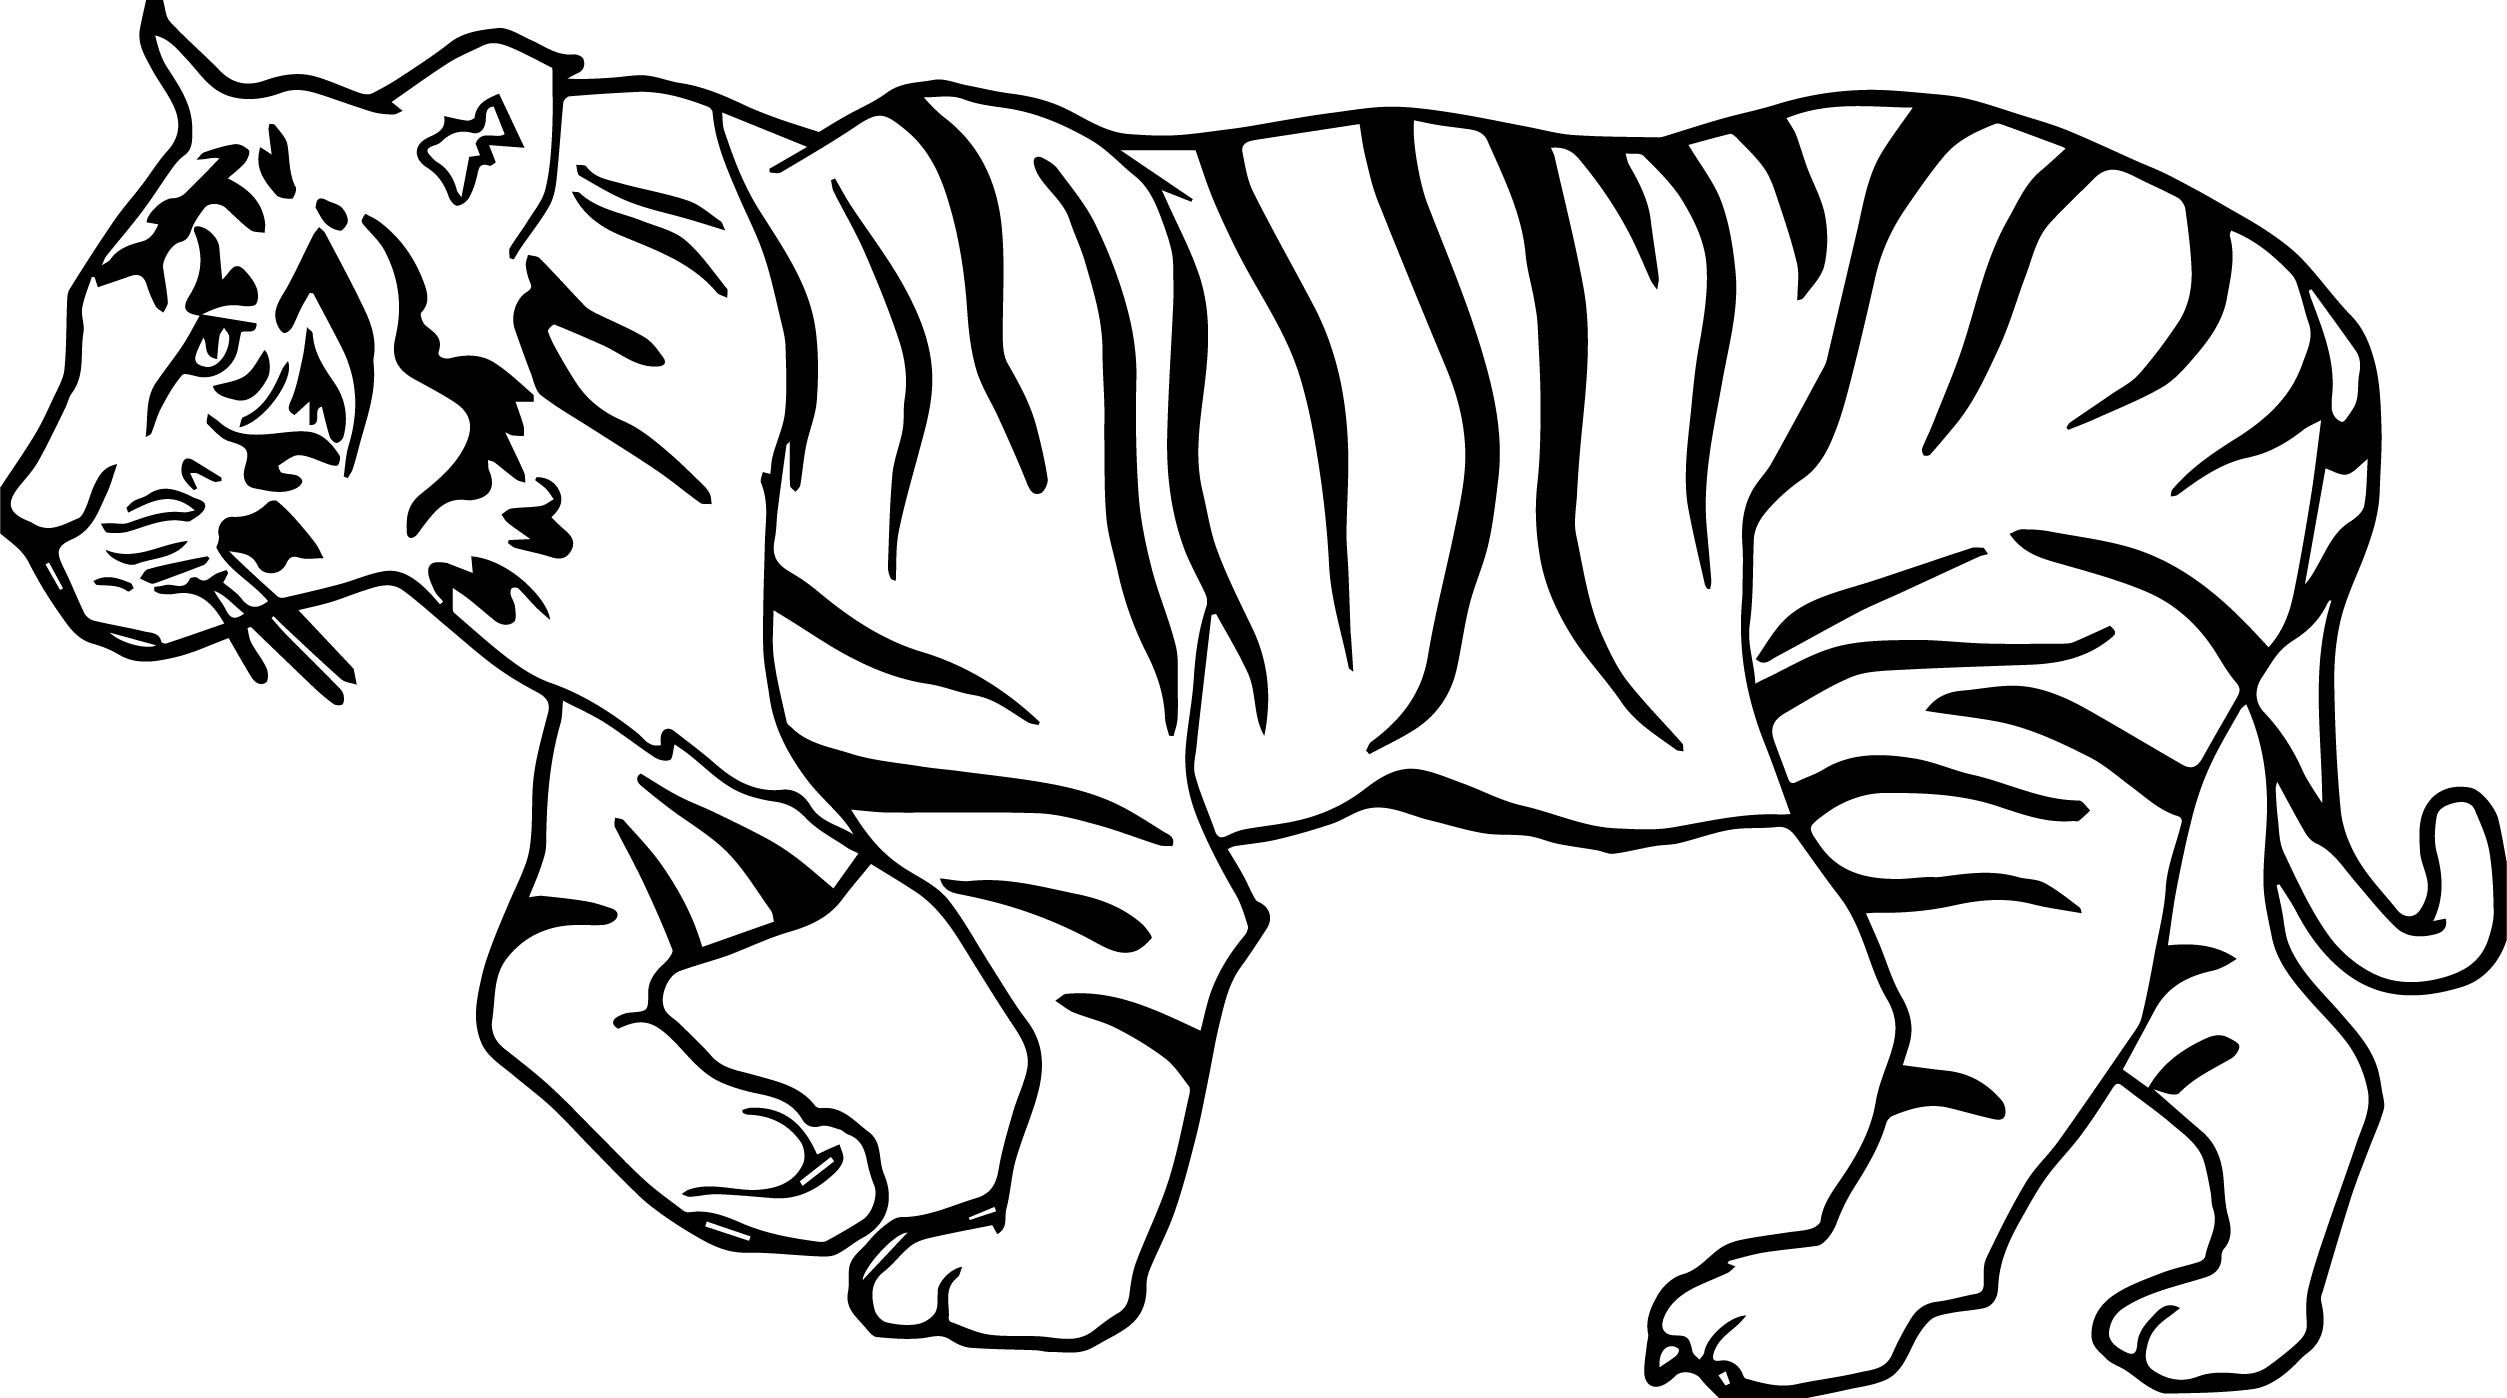 Nice Tiger Walk Coloring Page Paper Animals Coloring Pages Tiger Sketch